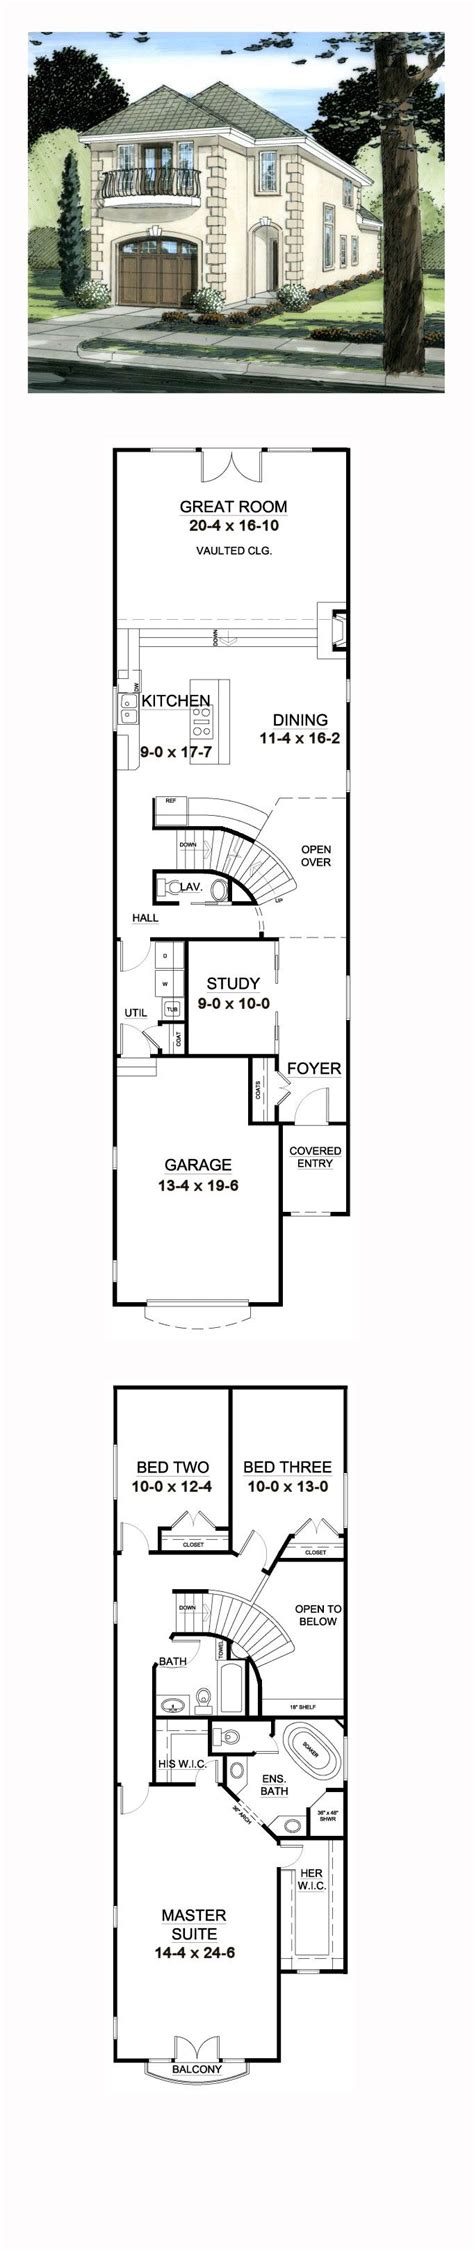 skinny house plans best 25 narrow house plans ideas on pinterest narrow